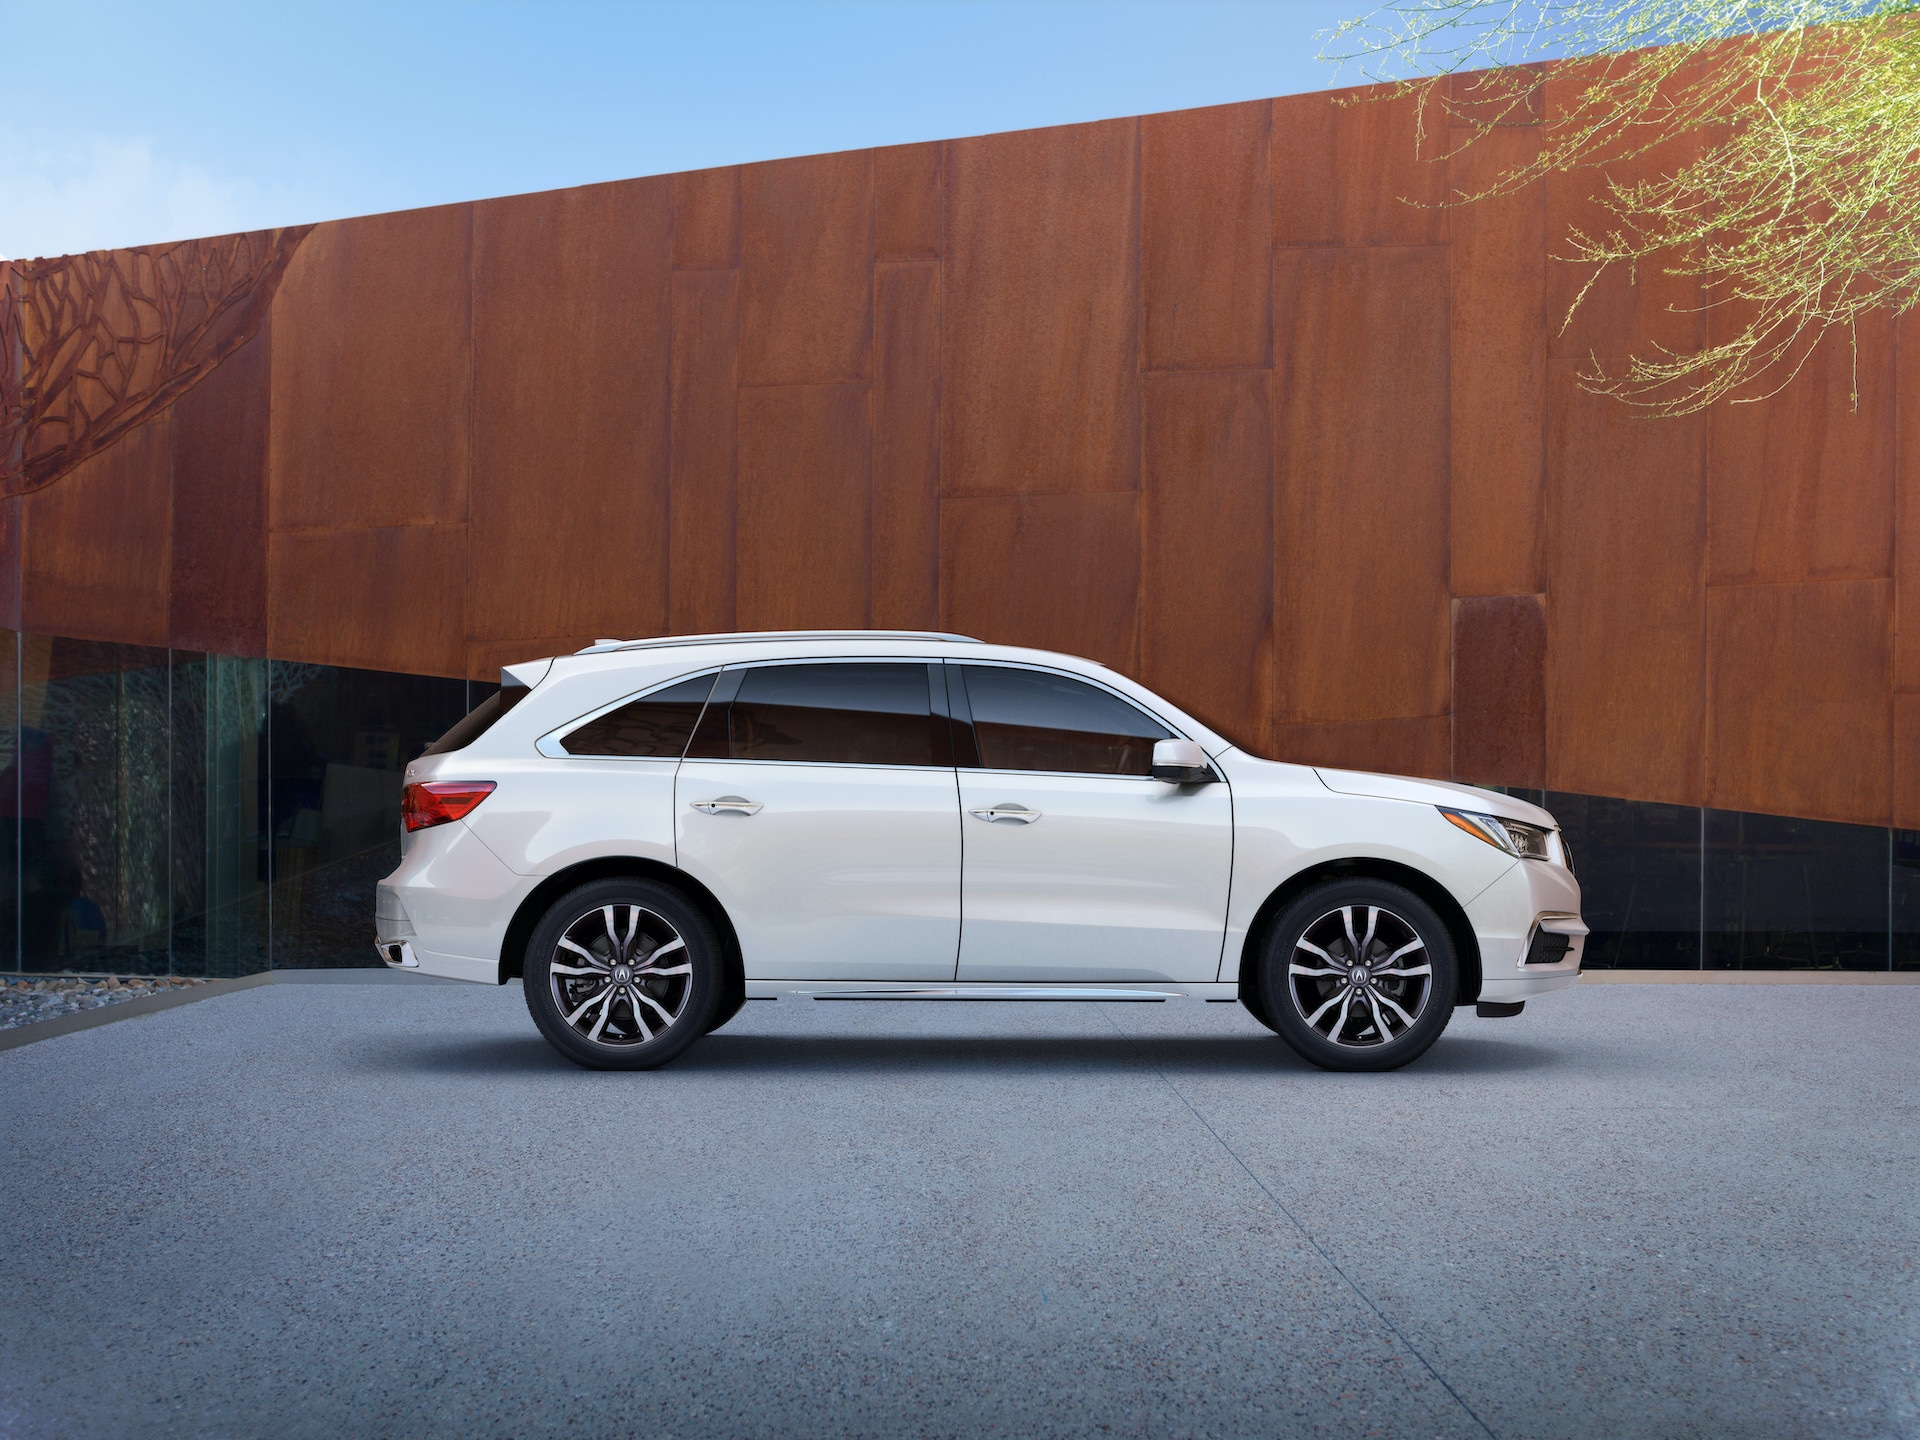 Comparison of the 2020 Acura MDX & 2020 Toyota Highlander at Acura Hunt Valley | Profile view of White 2020 Acura MDX parked by wooden wall